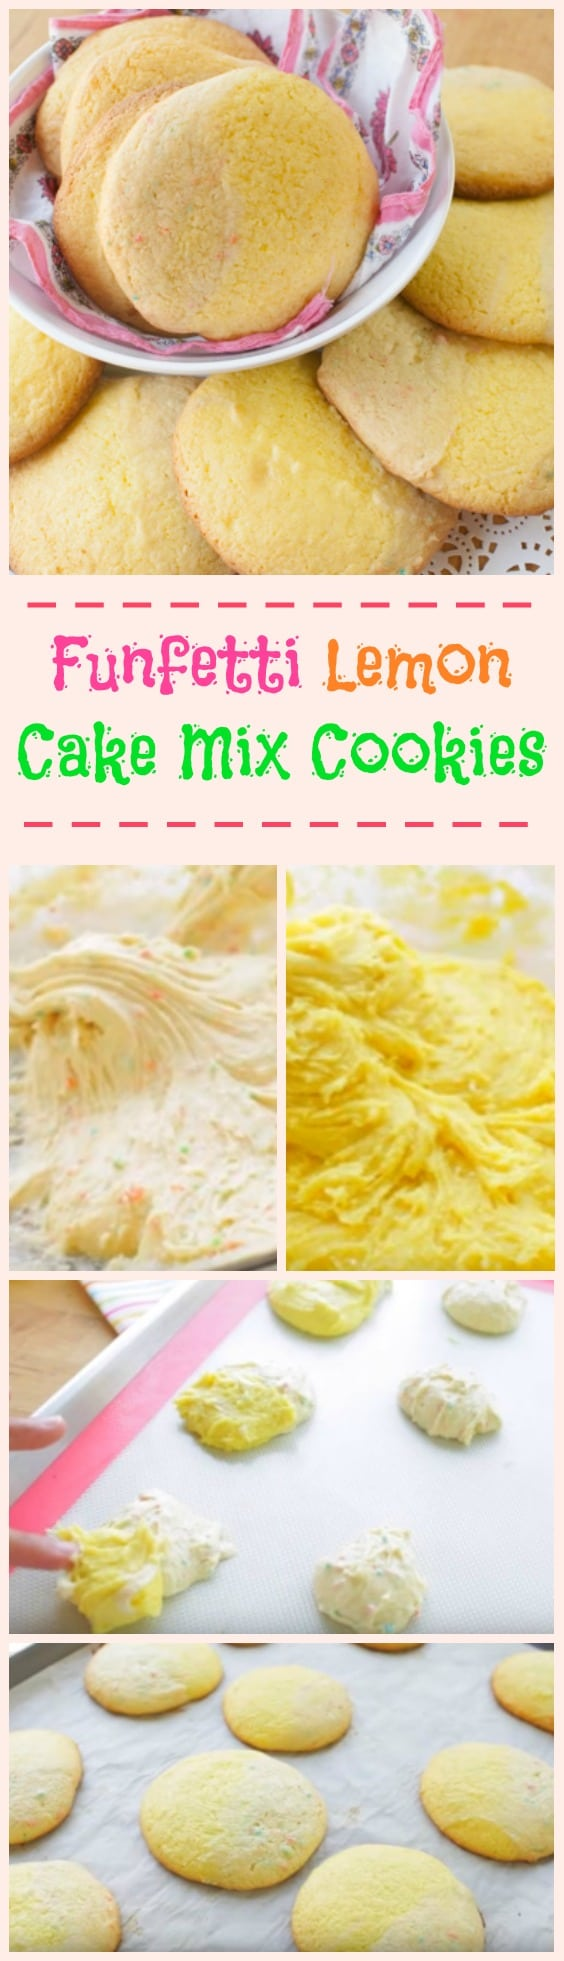 Funfetti Lemon Cake Mix Cookies step by step guide